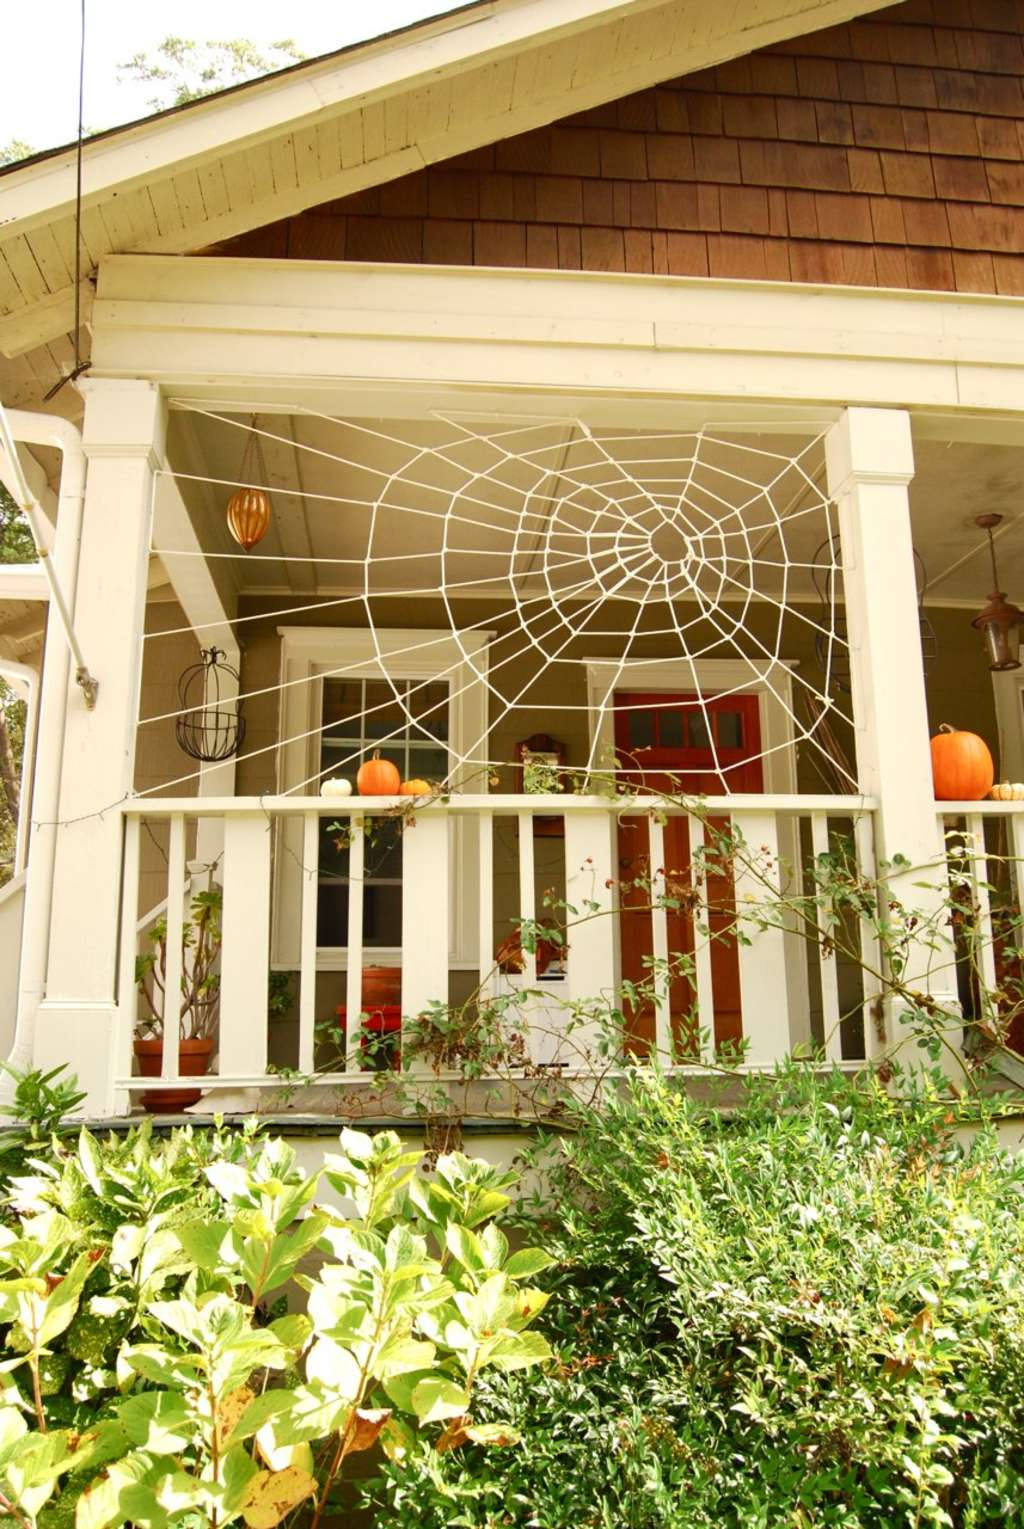 10 Ideas for Decorating Your Porch this Halloween